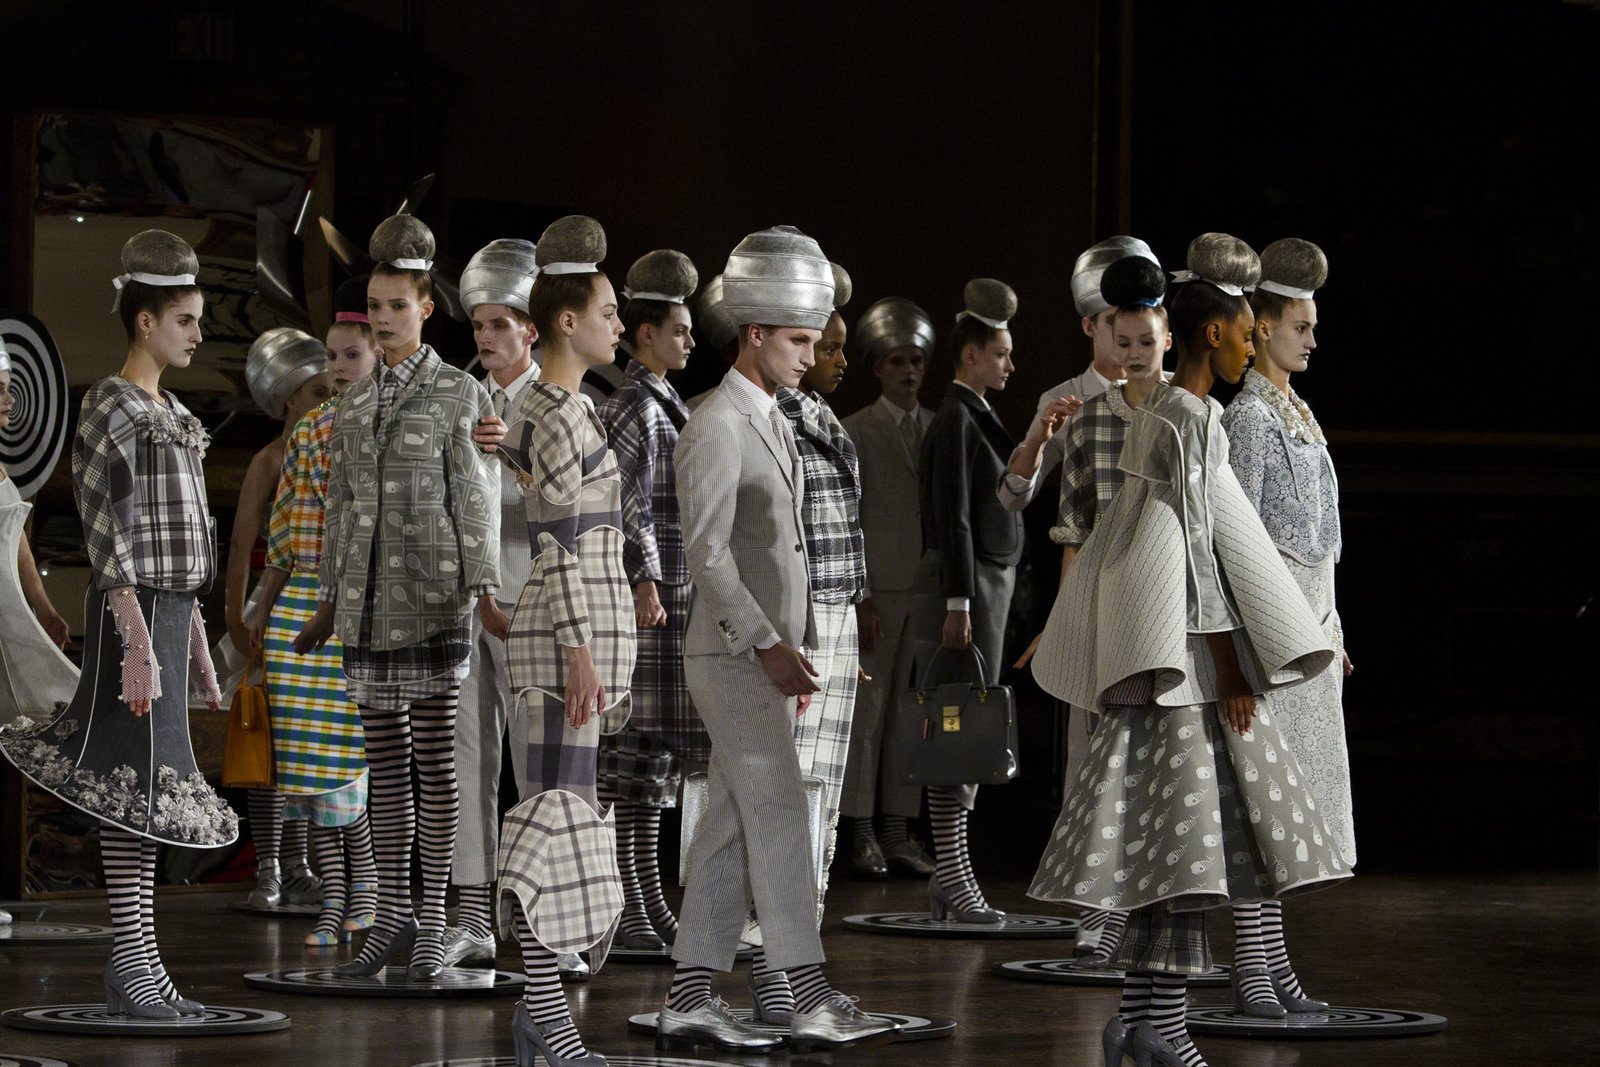 Thom Browne Spring/Summer 2012